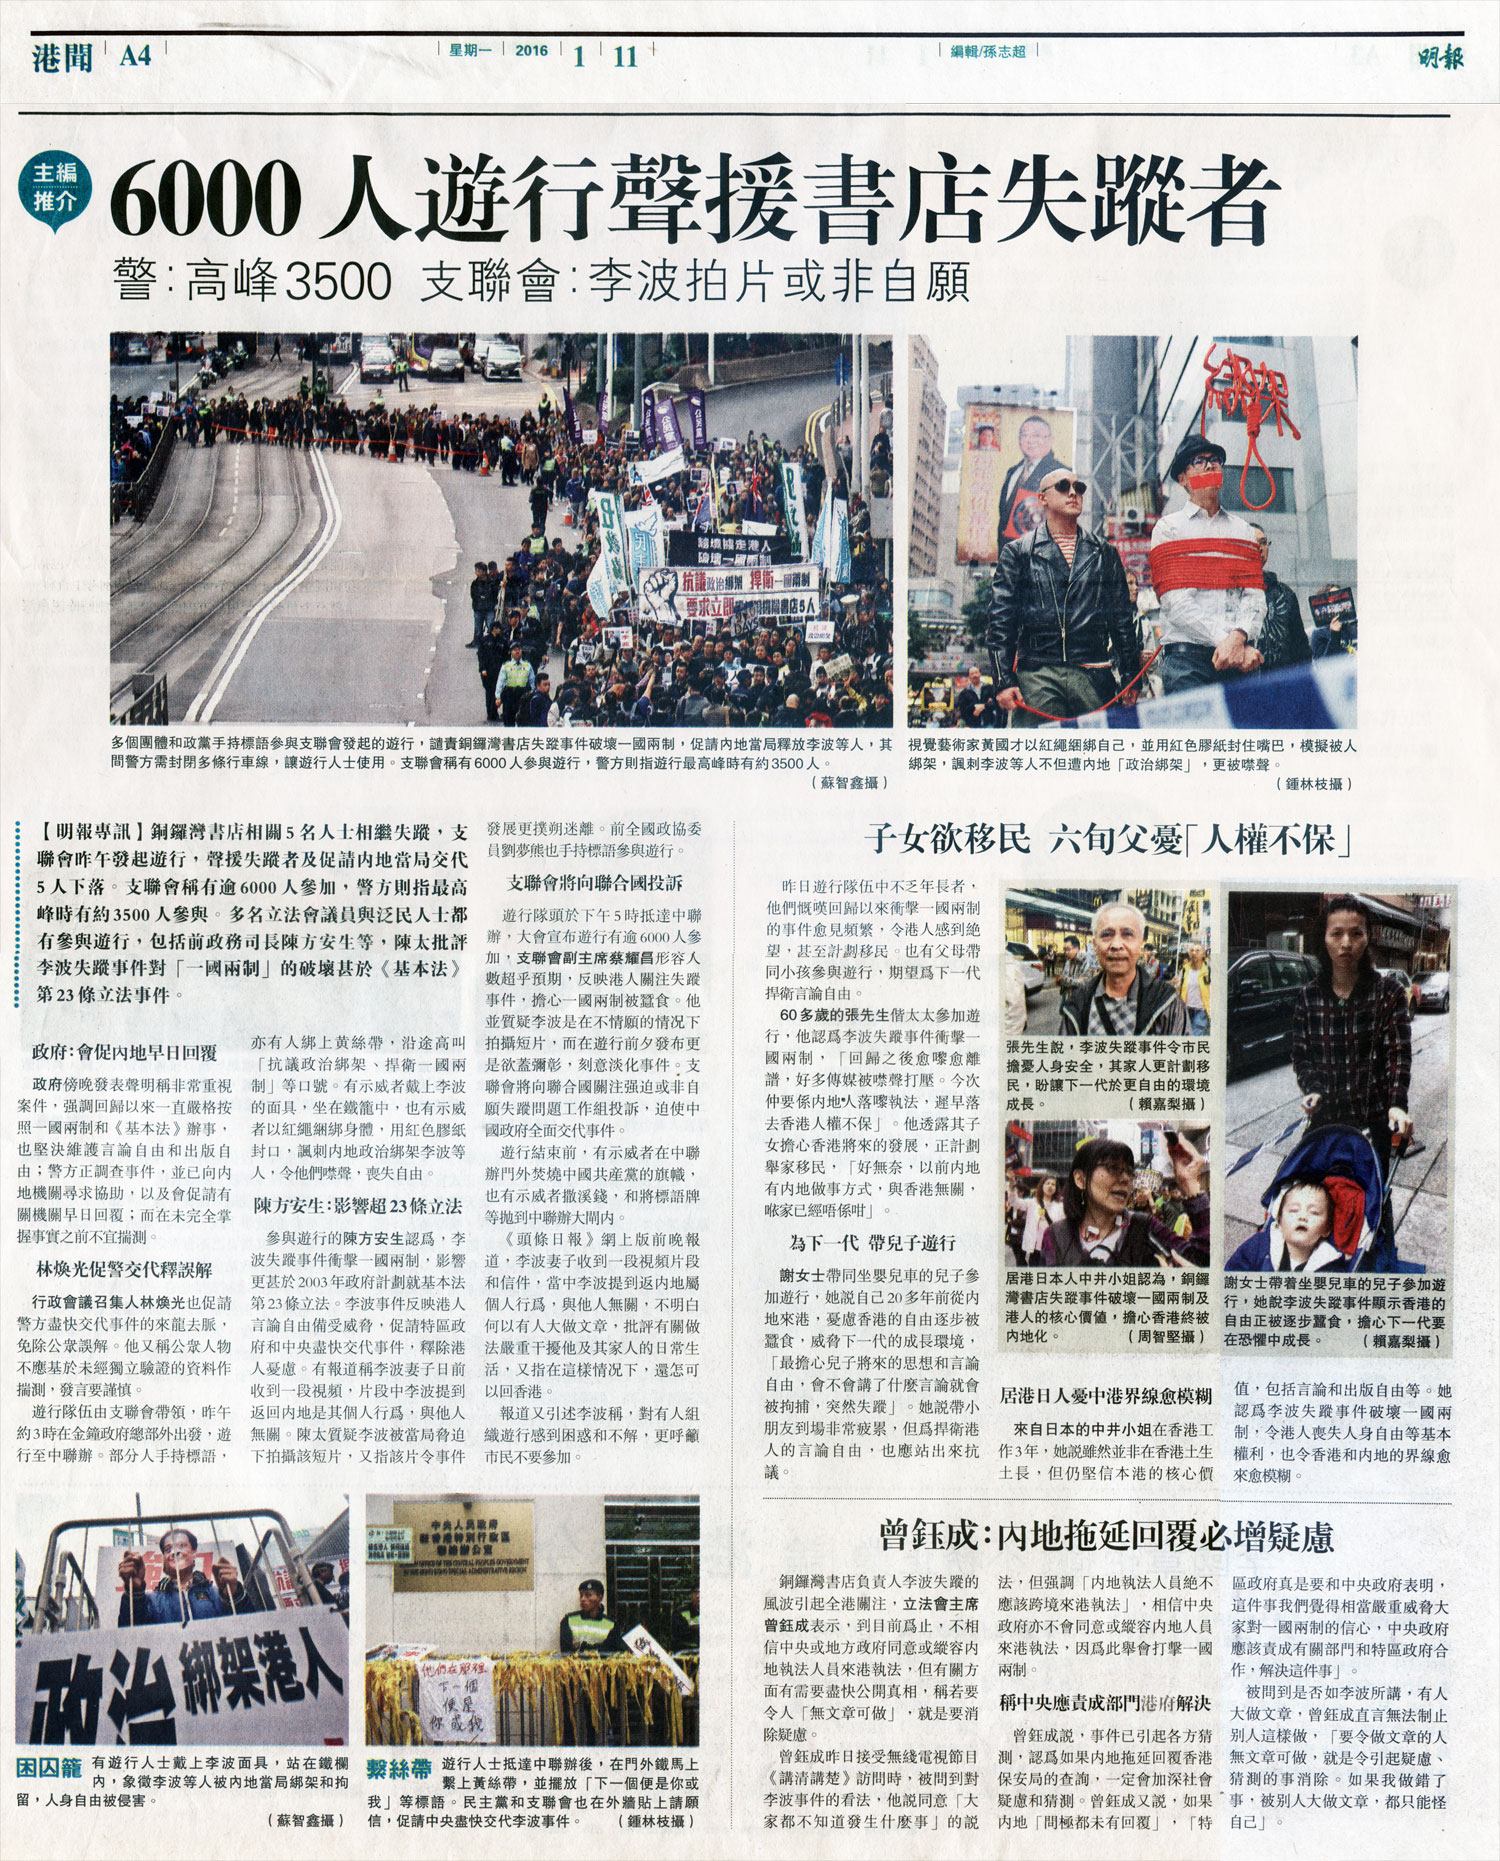 Nov/1/2016 Ming Pao  6000 protesters marchesd in support of the missing booksellers